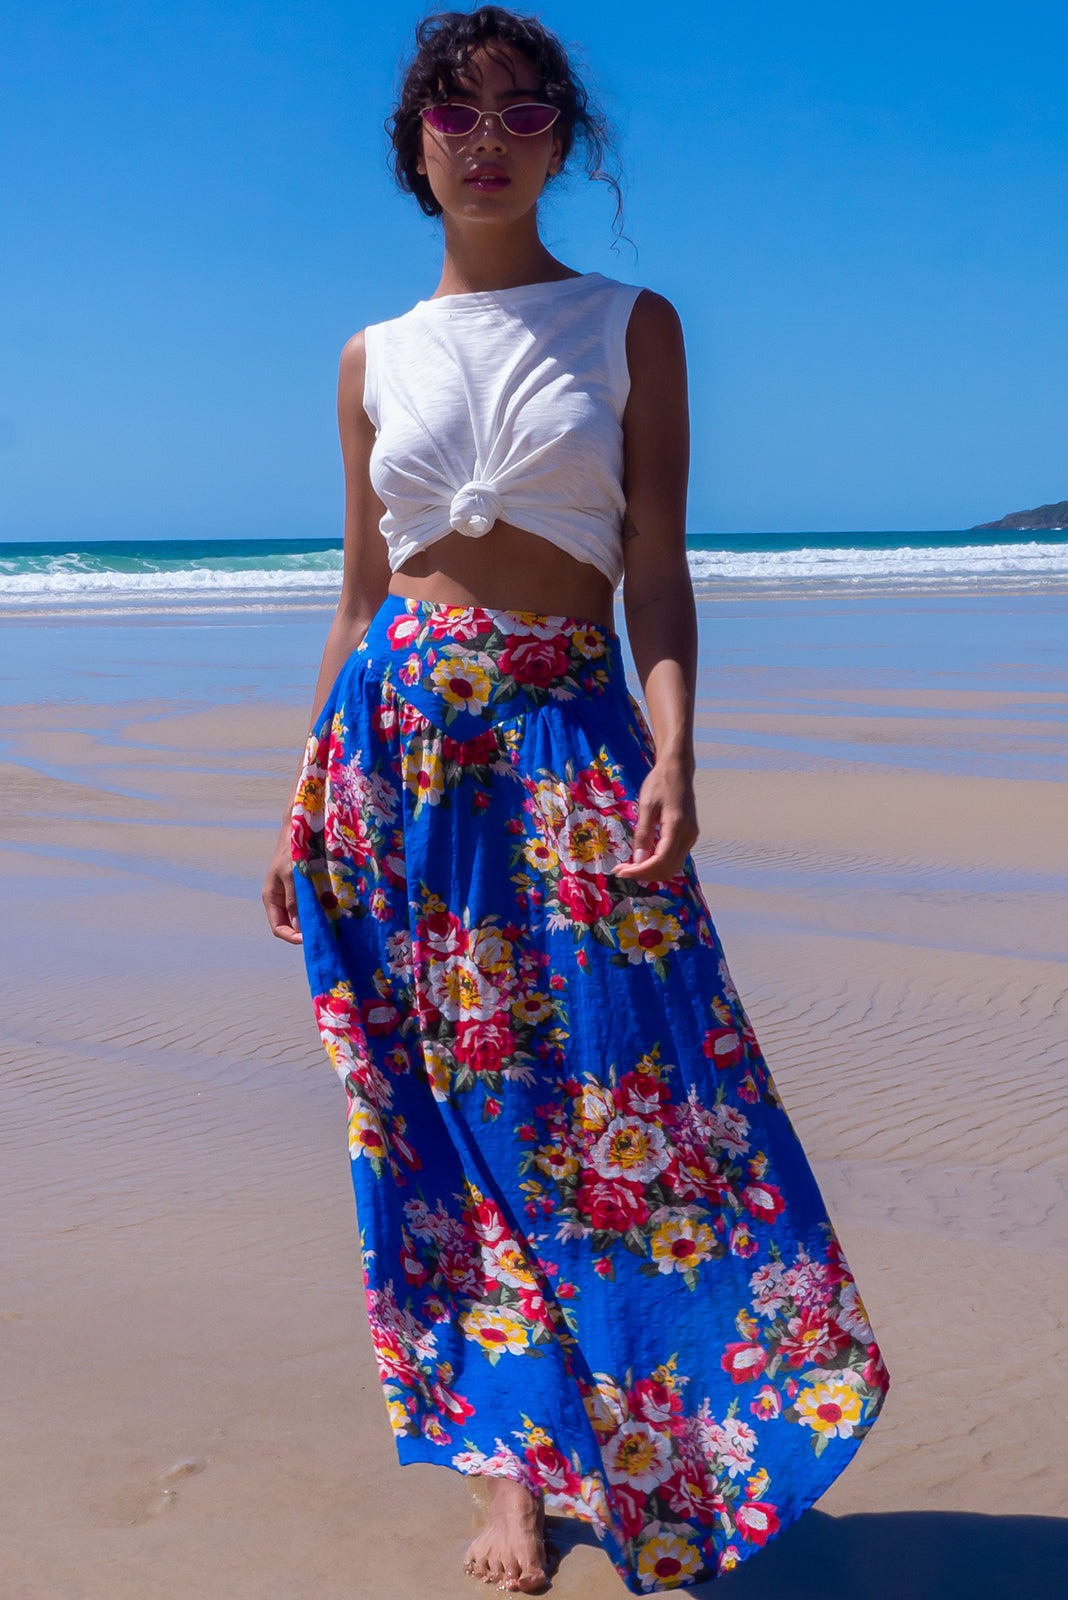 The Sails Culebra Cotton Blue Maxi Skirt has scooped hemline featuring shorter at sides, V-shaped panelled waist band, elasticated back of waist, side pocket and 65% cotton, 35% rayon  in bold cobalt blue base with large summer floral print.